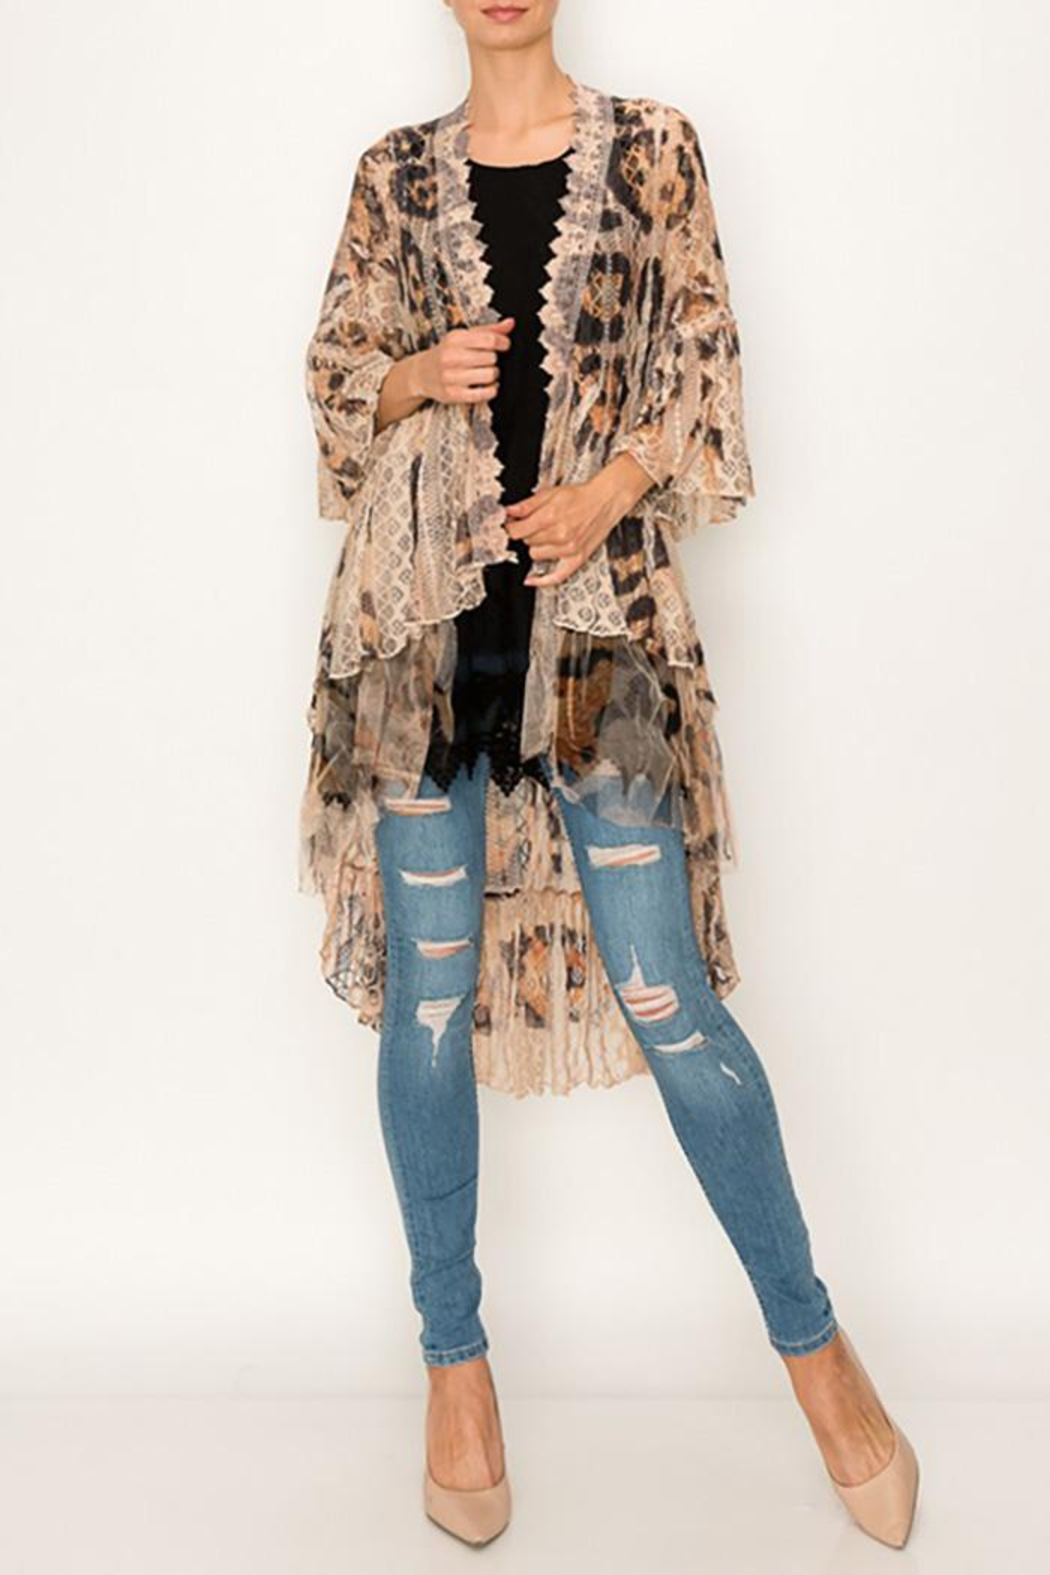 Origami All Lace Leopard Printed Cardigan - Main Image